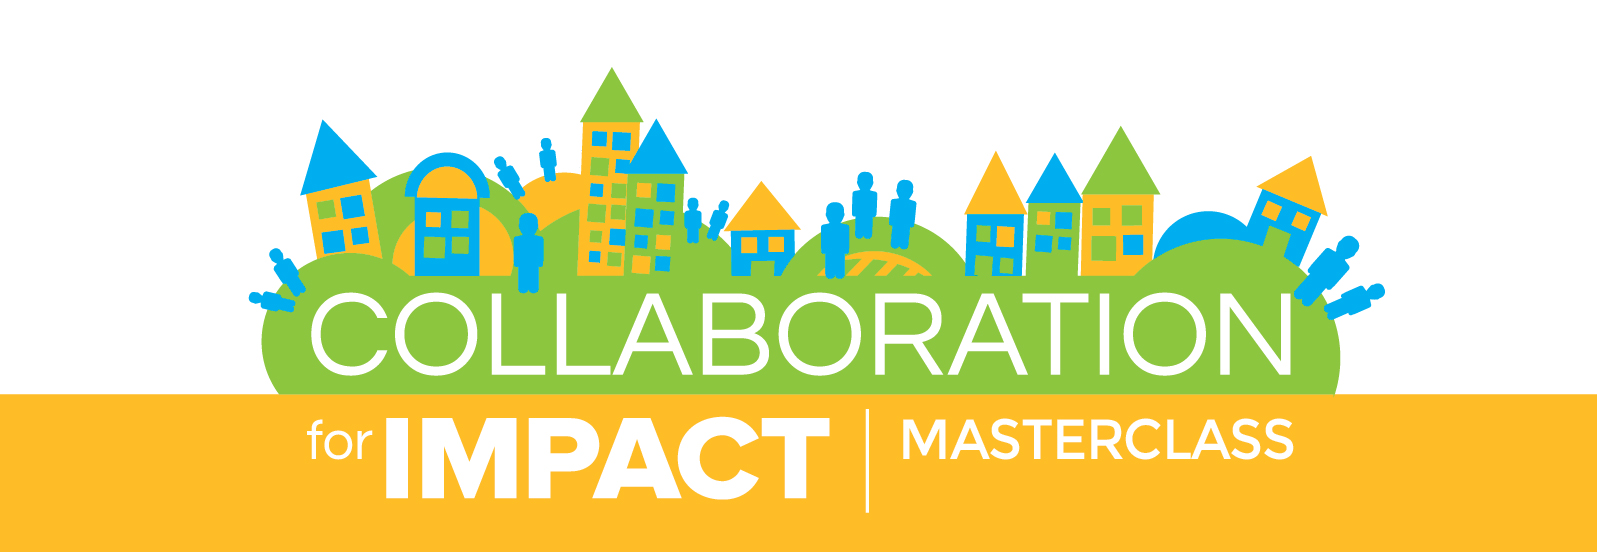 Collaboration for Impact Masterclass